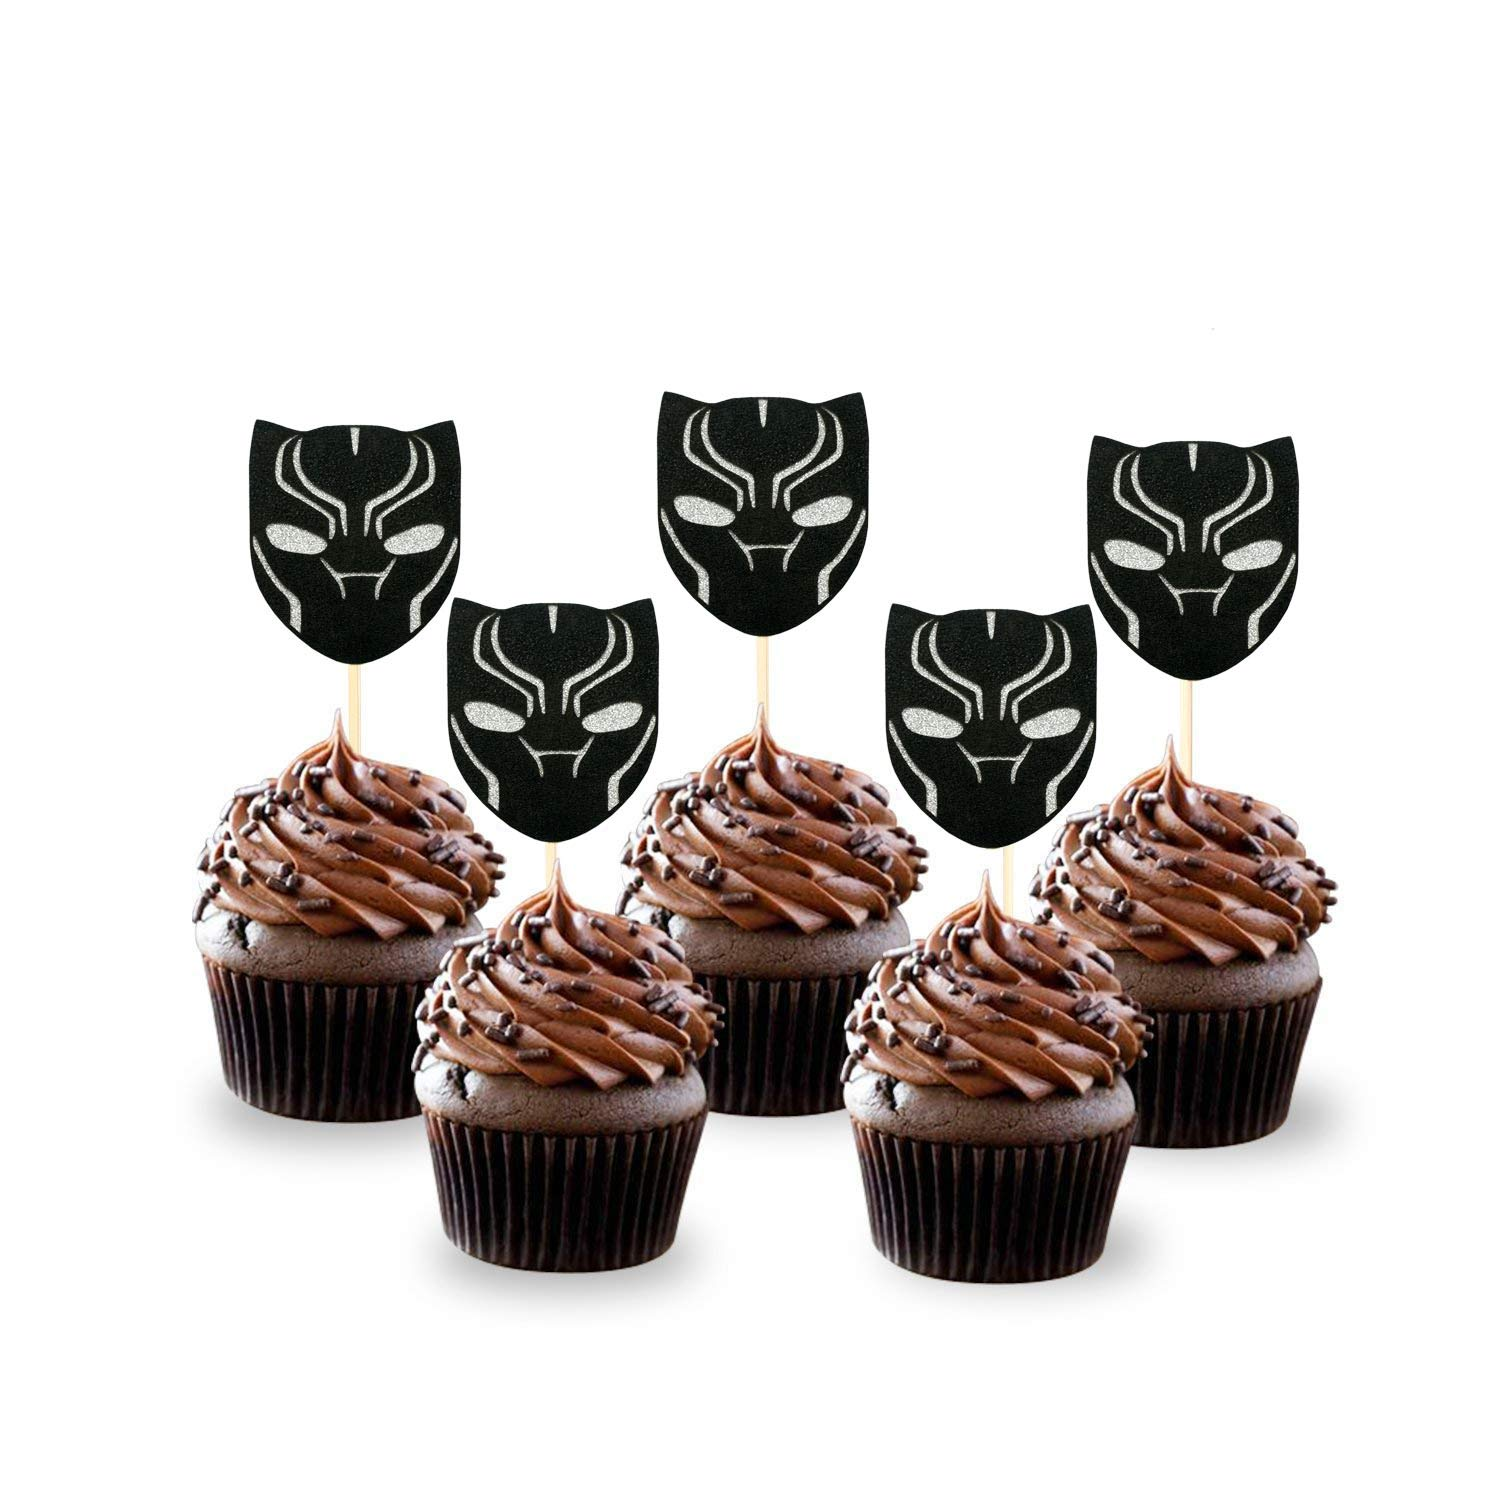 NiceLife Black Panther Cupcake Toppers(Set of 24) Birthday Party Decorations Supplies Avengers Party Decorations Party Supplies